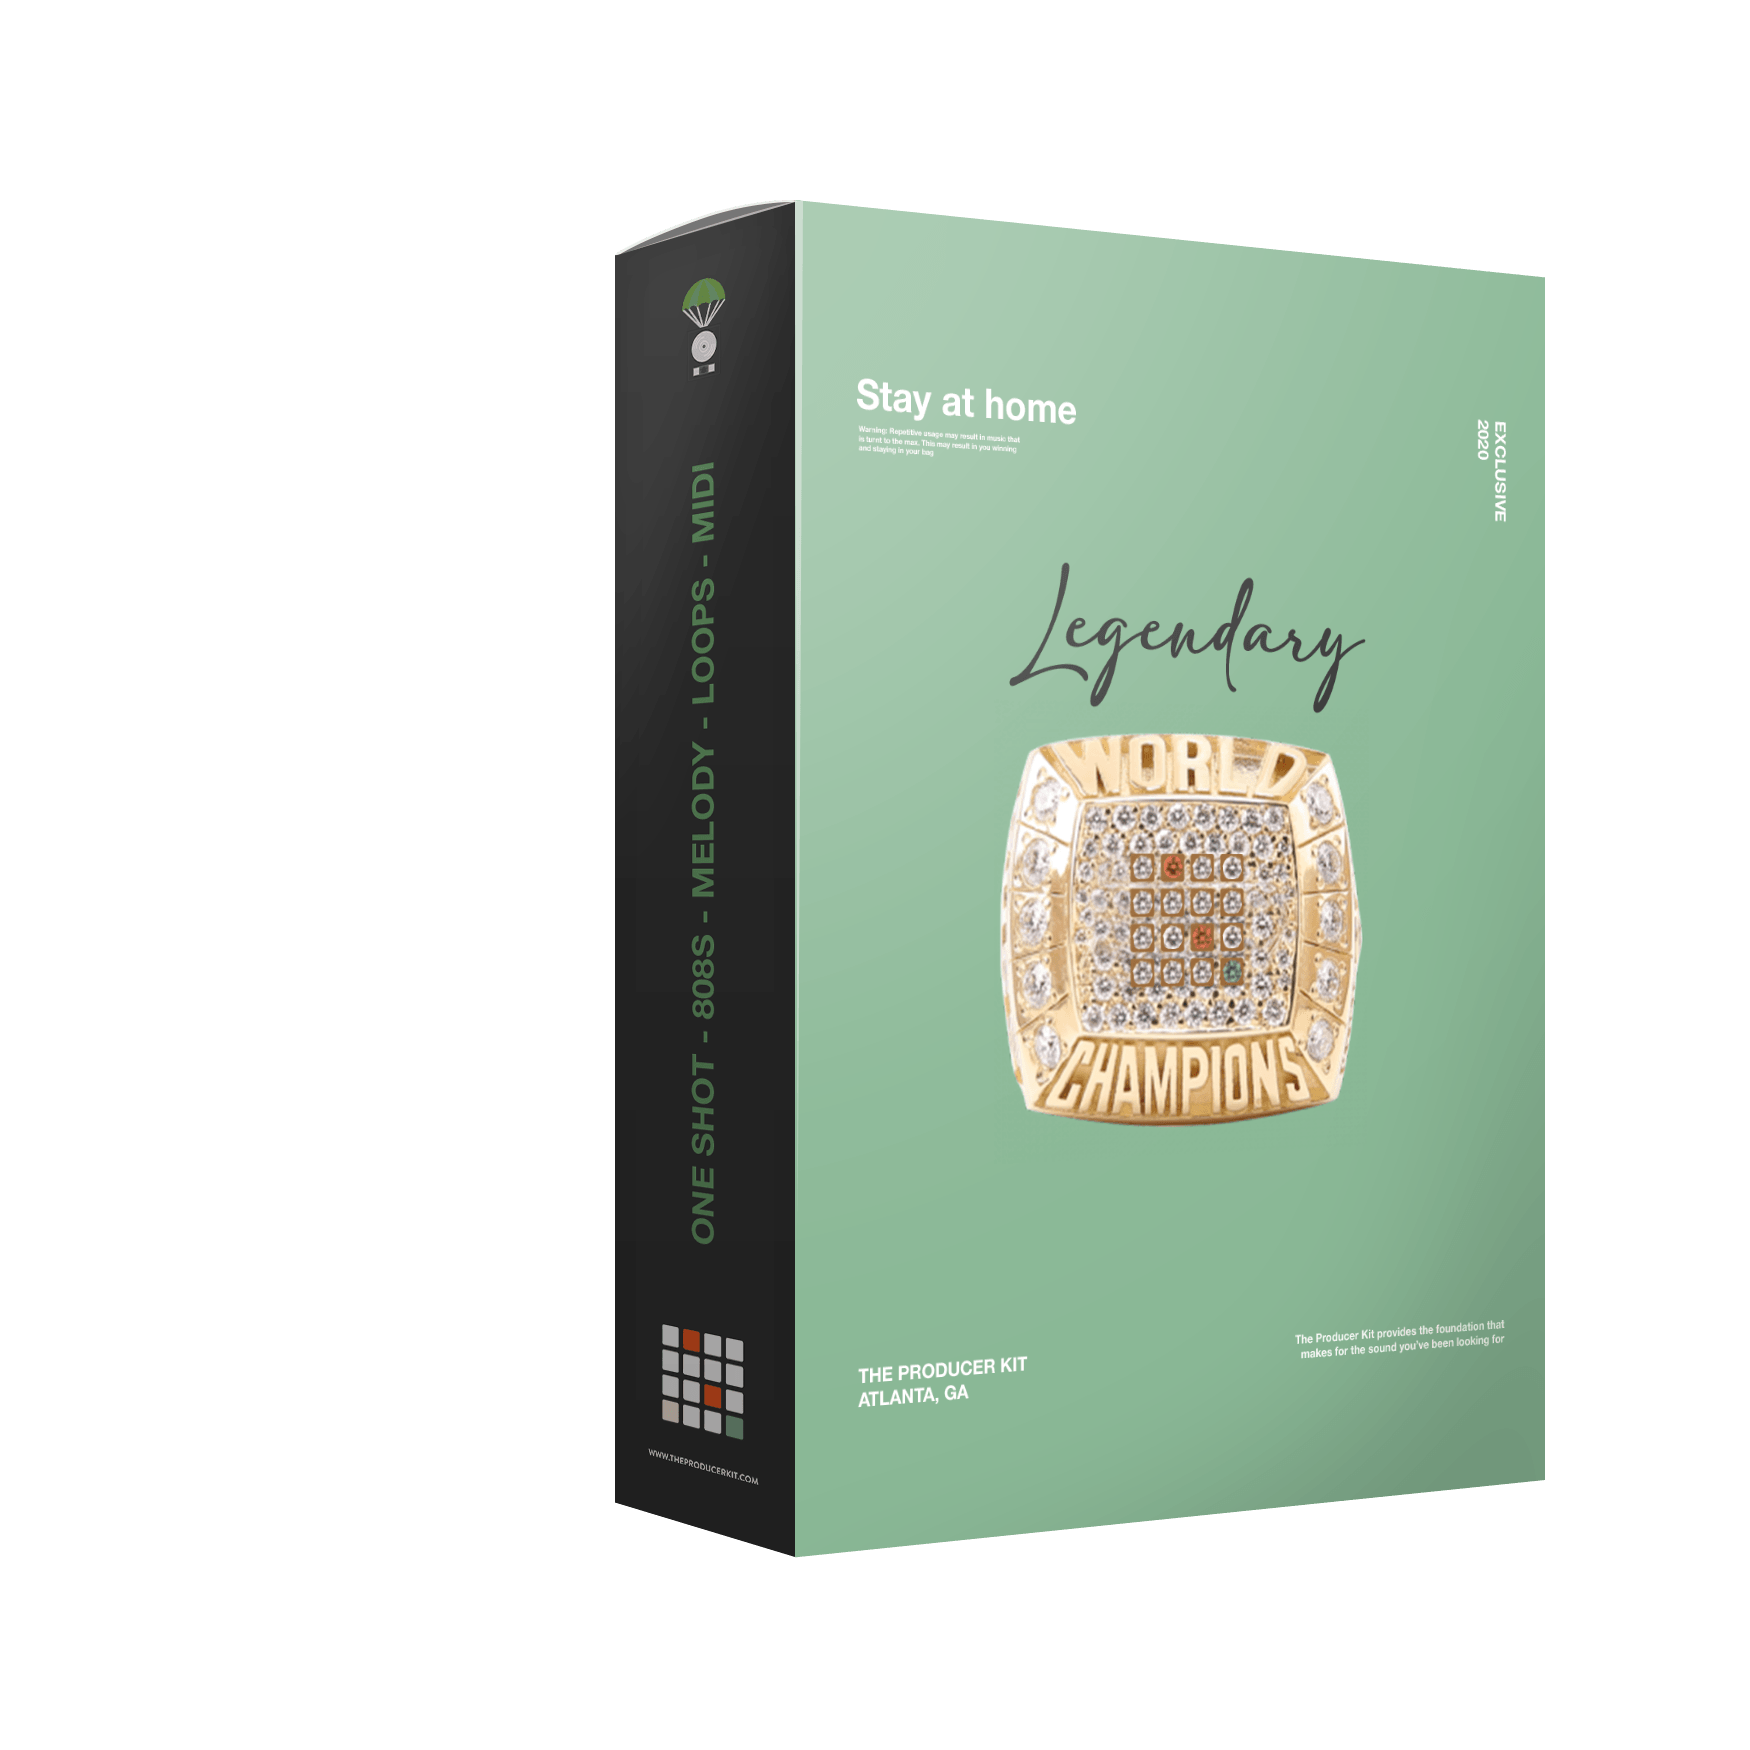 LEGENDARY LOOPS - The Producer Kit